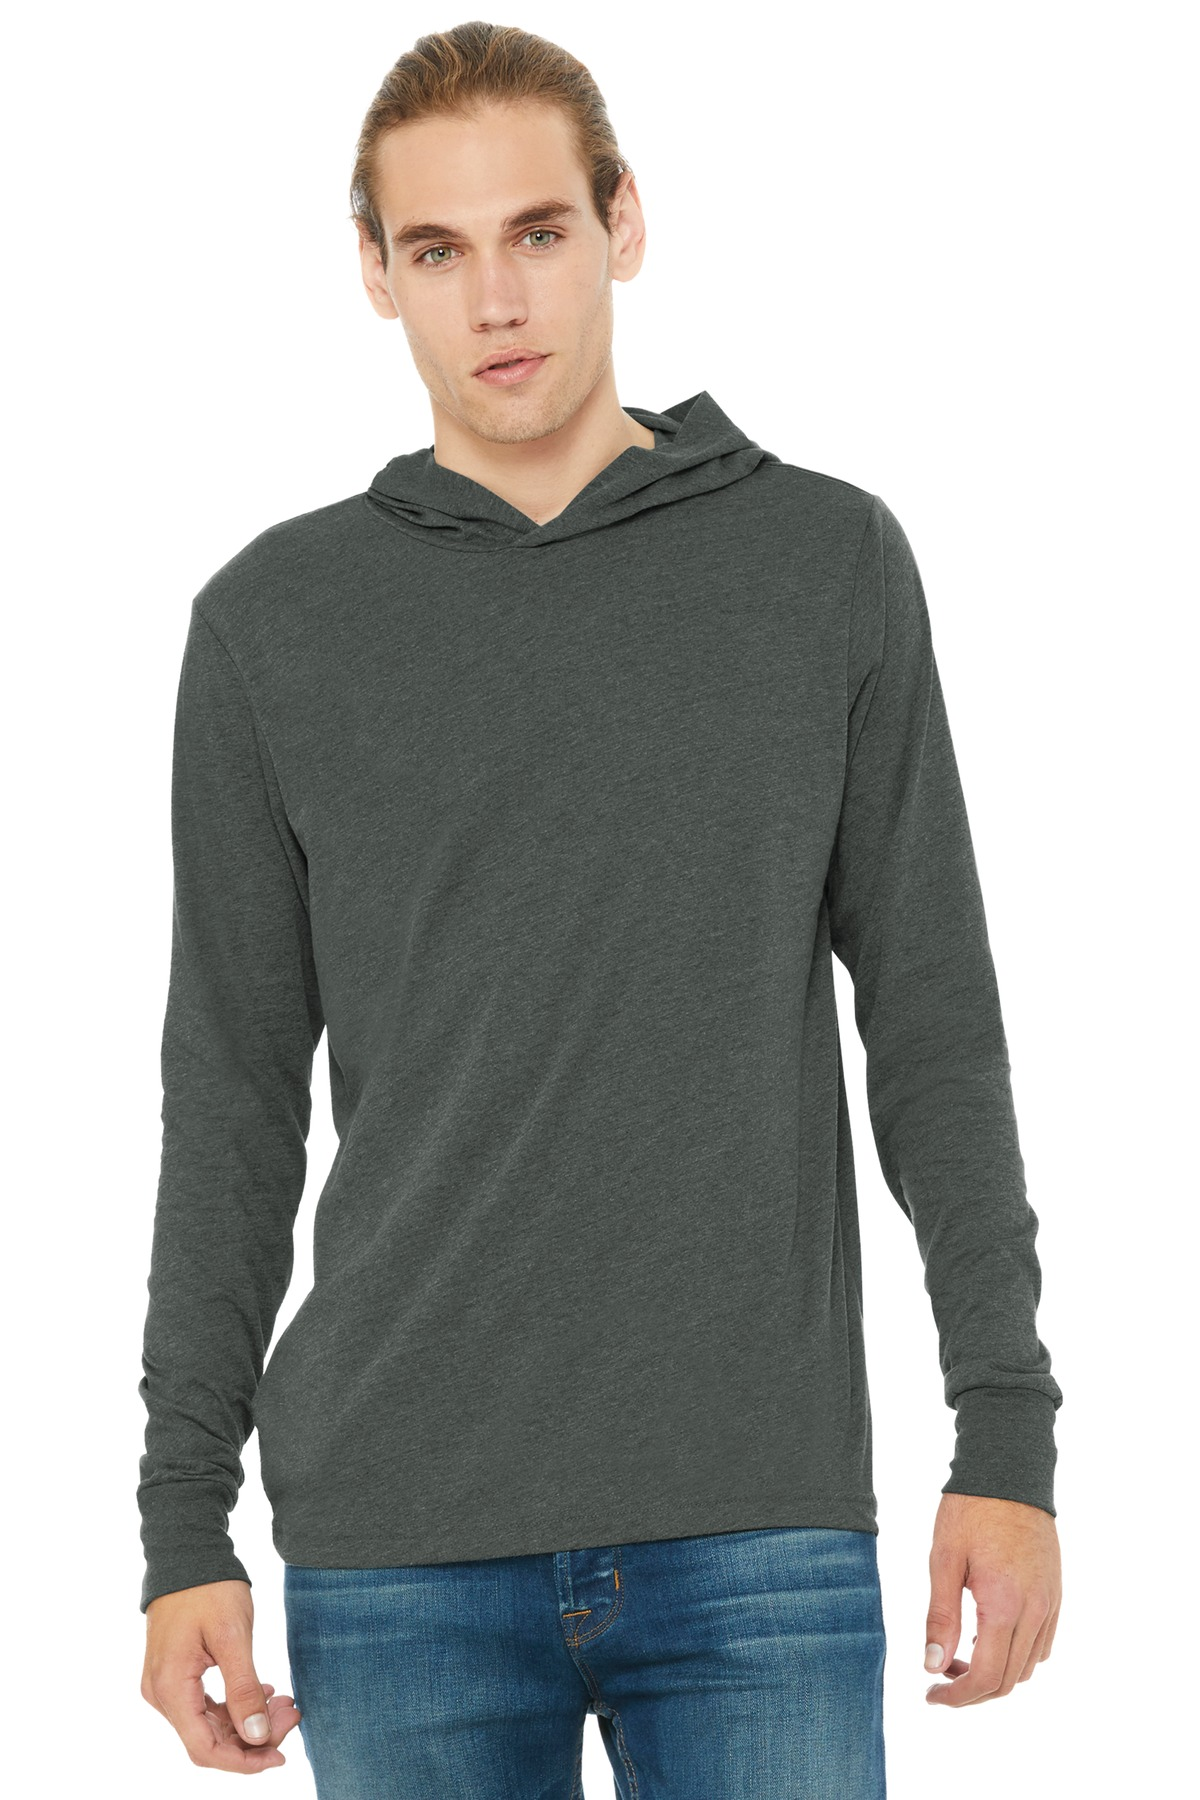 BELLA+CANVAS  ®  Unisex Jersey Long Sleeve Hoodie. BC3512 - Deep Heather